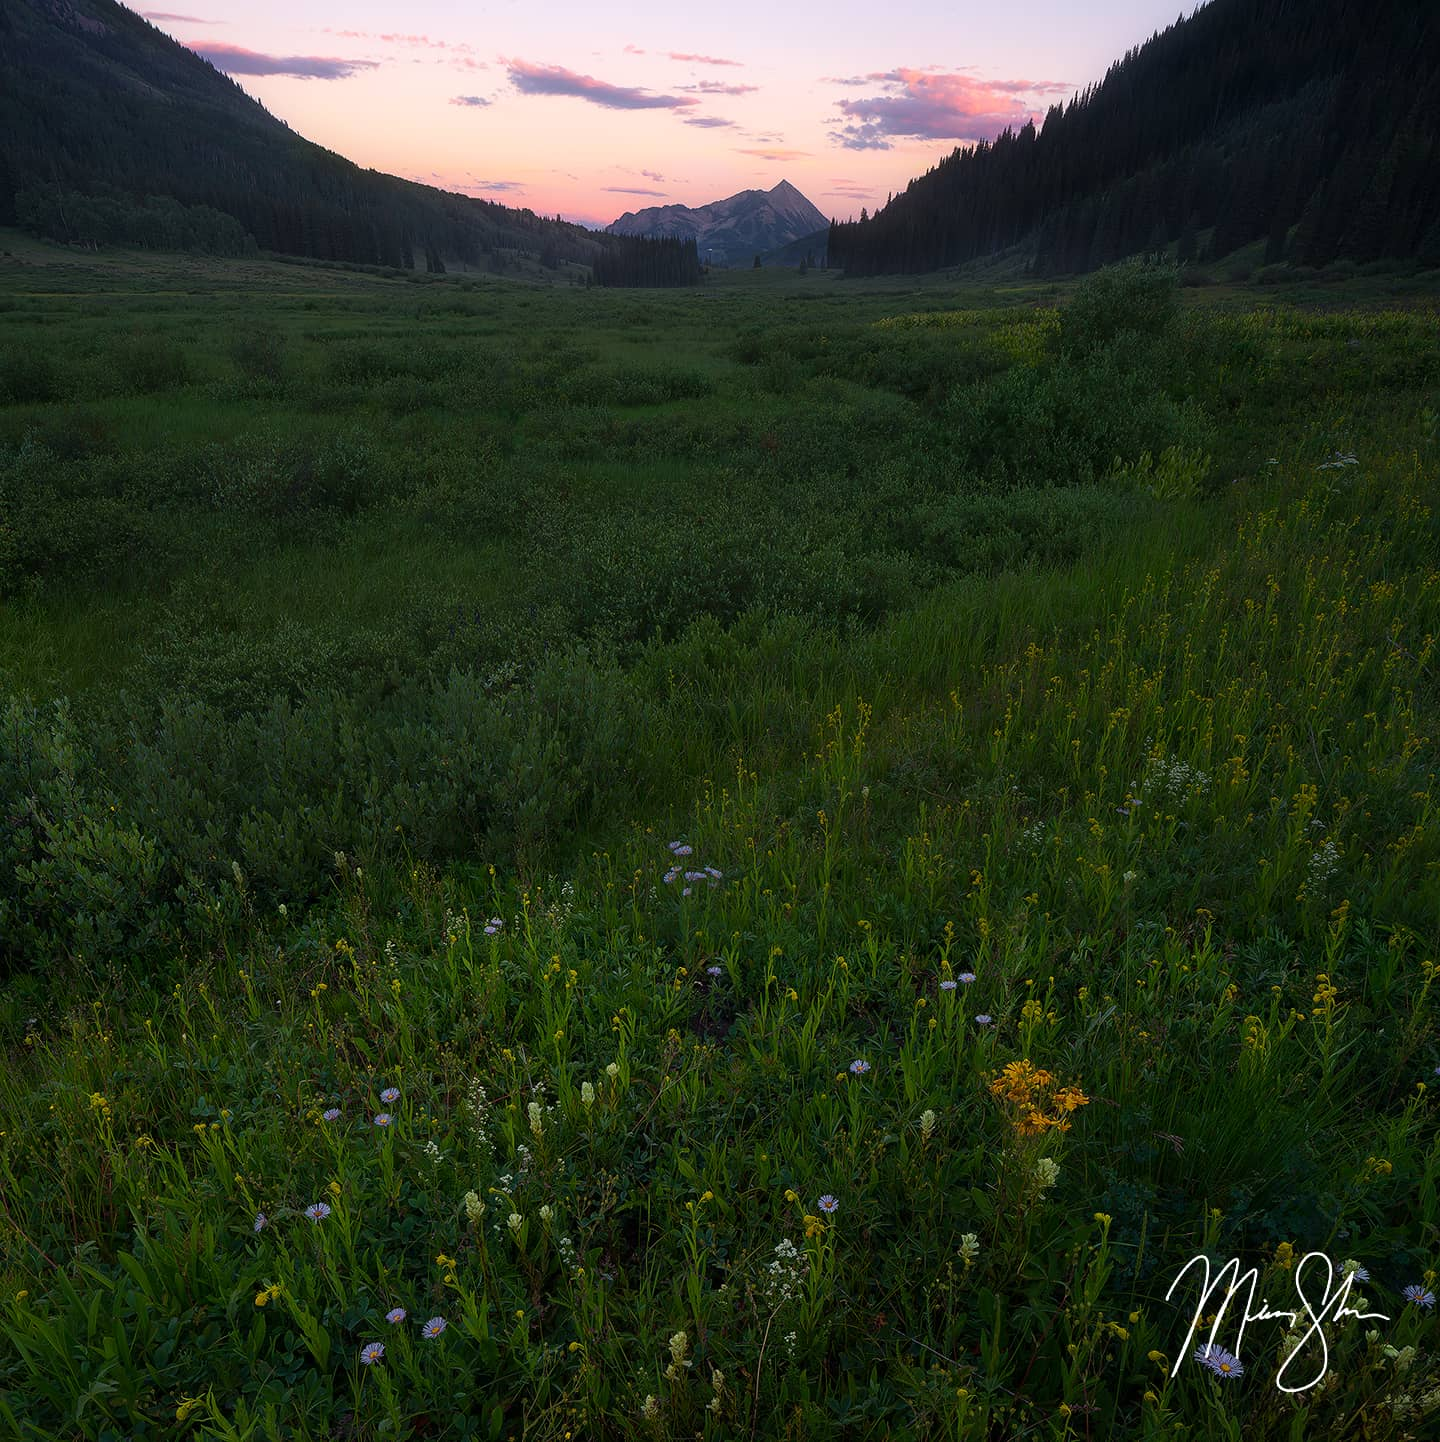 Open edition fine art print of Gothic Sunset from Mickey Shannon Photography. Location: Gothic, Crested Butte, Colorado